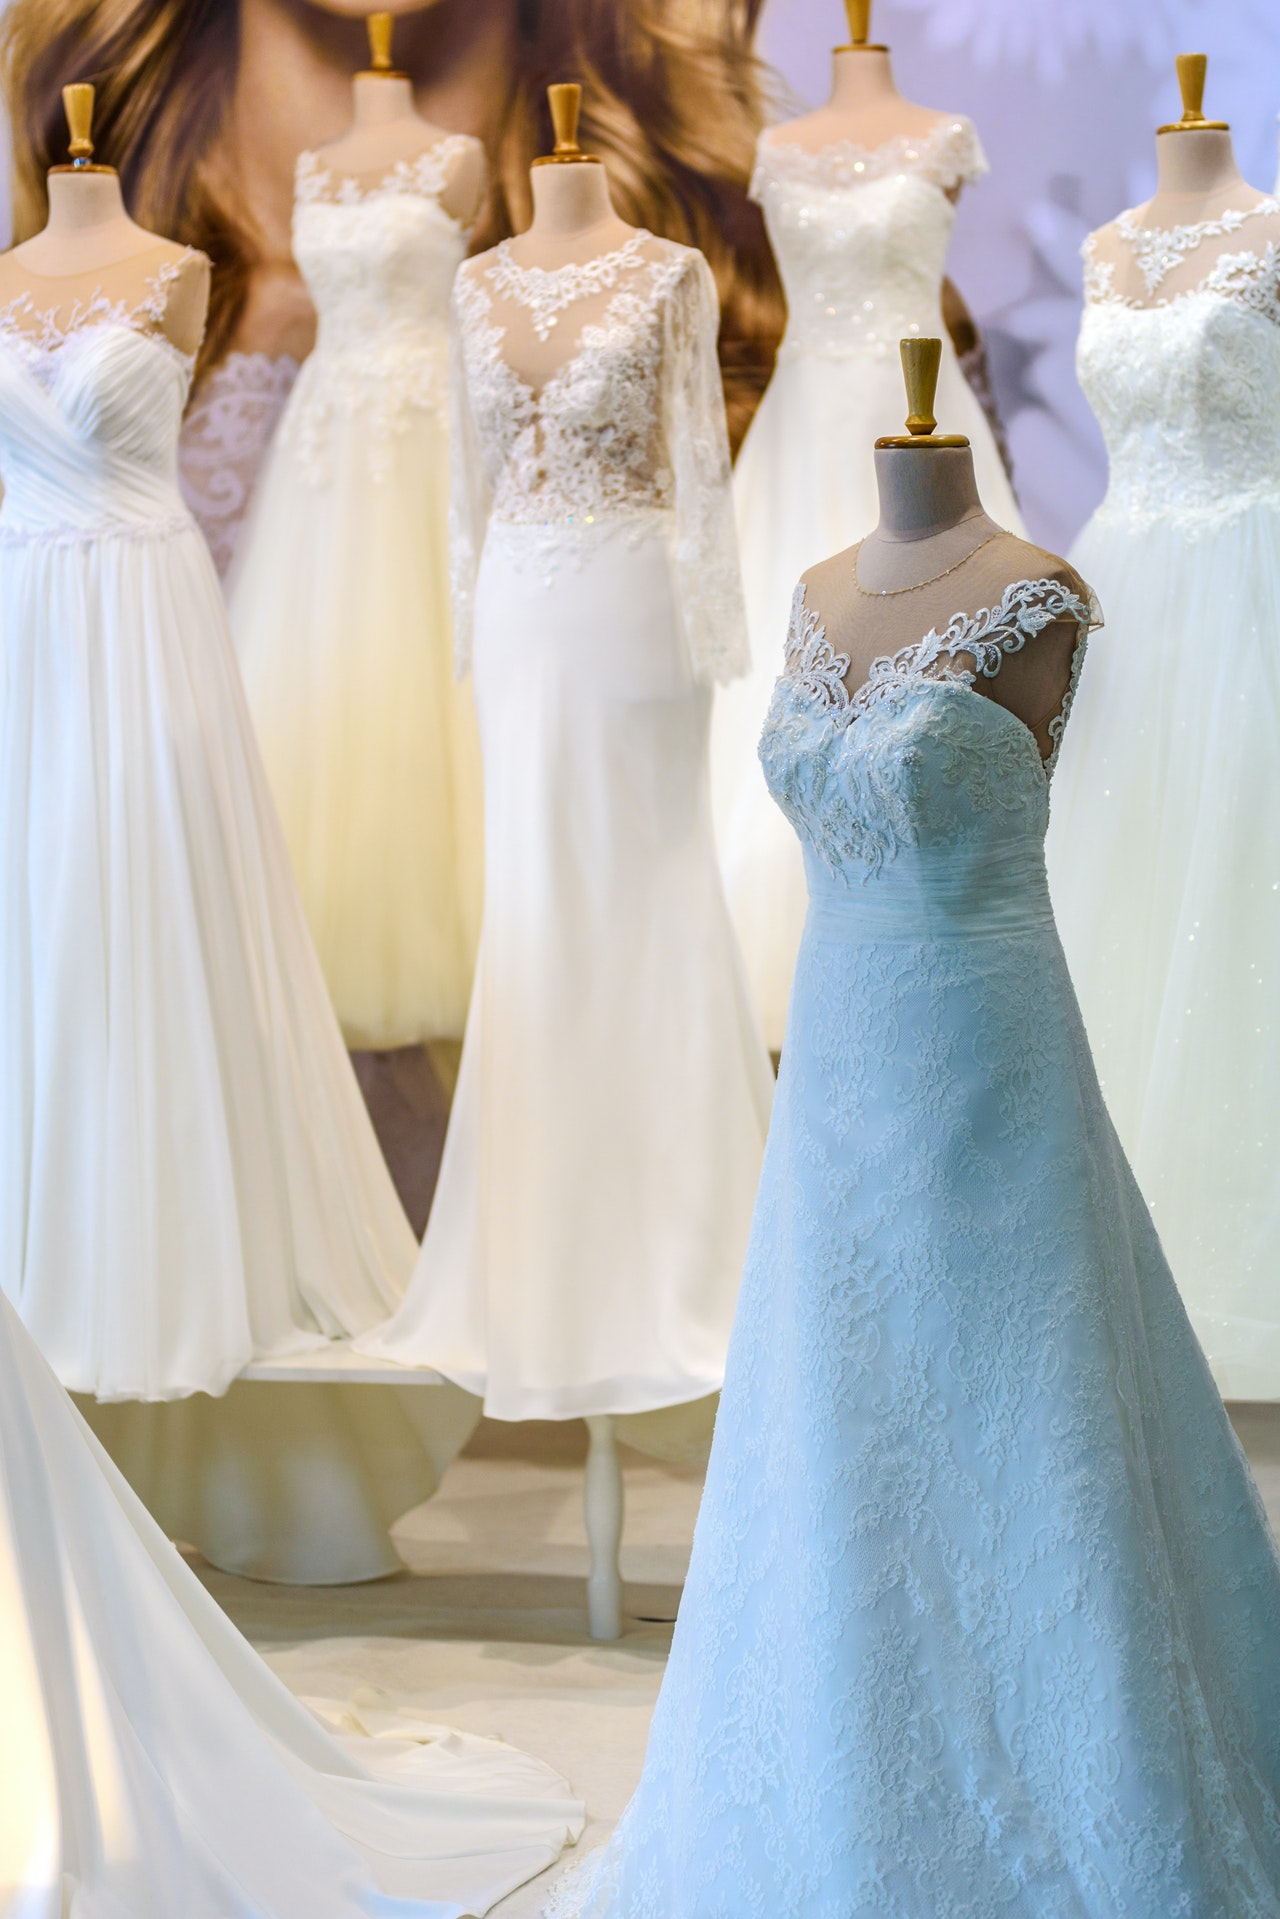 How To Choose The Best Traditional Wedding Dress For Your Big Day